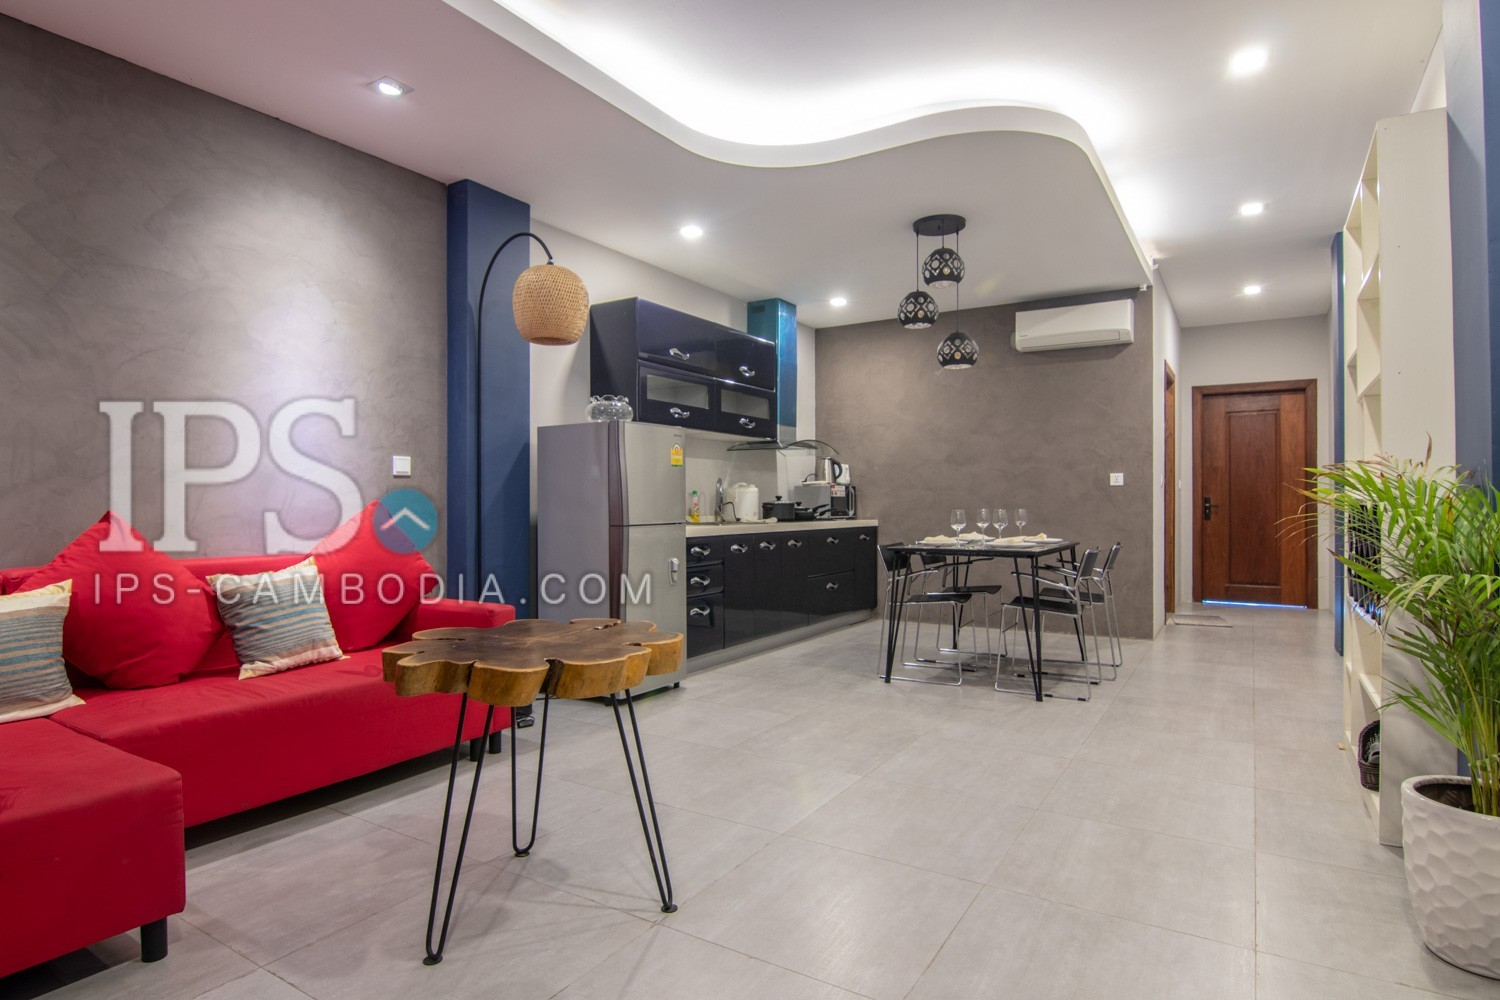 1 Bedroom Services Apartment For Rent in Phsar Kandal 1, Phnom Penh